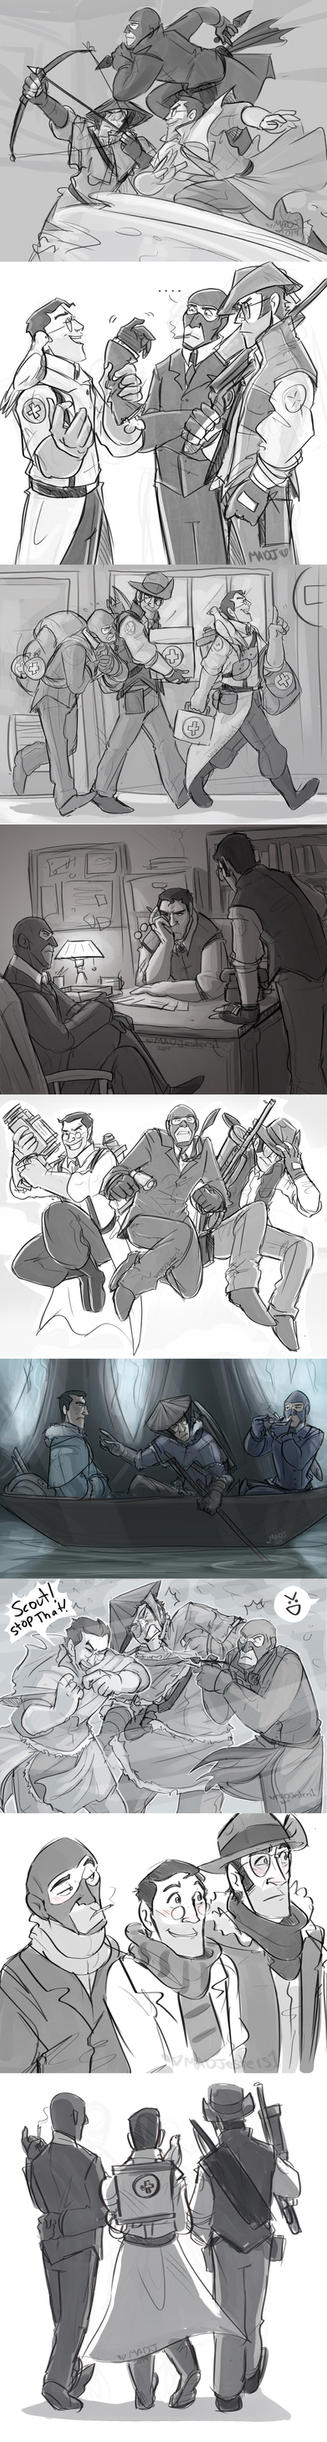 TF2- The Support Team Sketches by MadJesters1